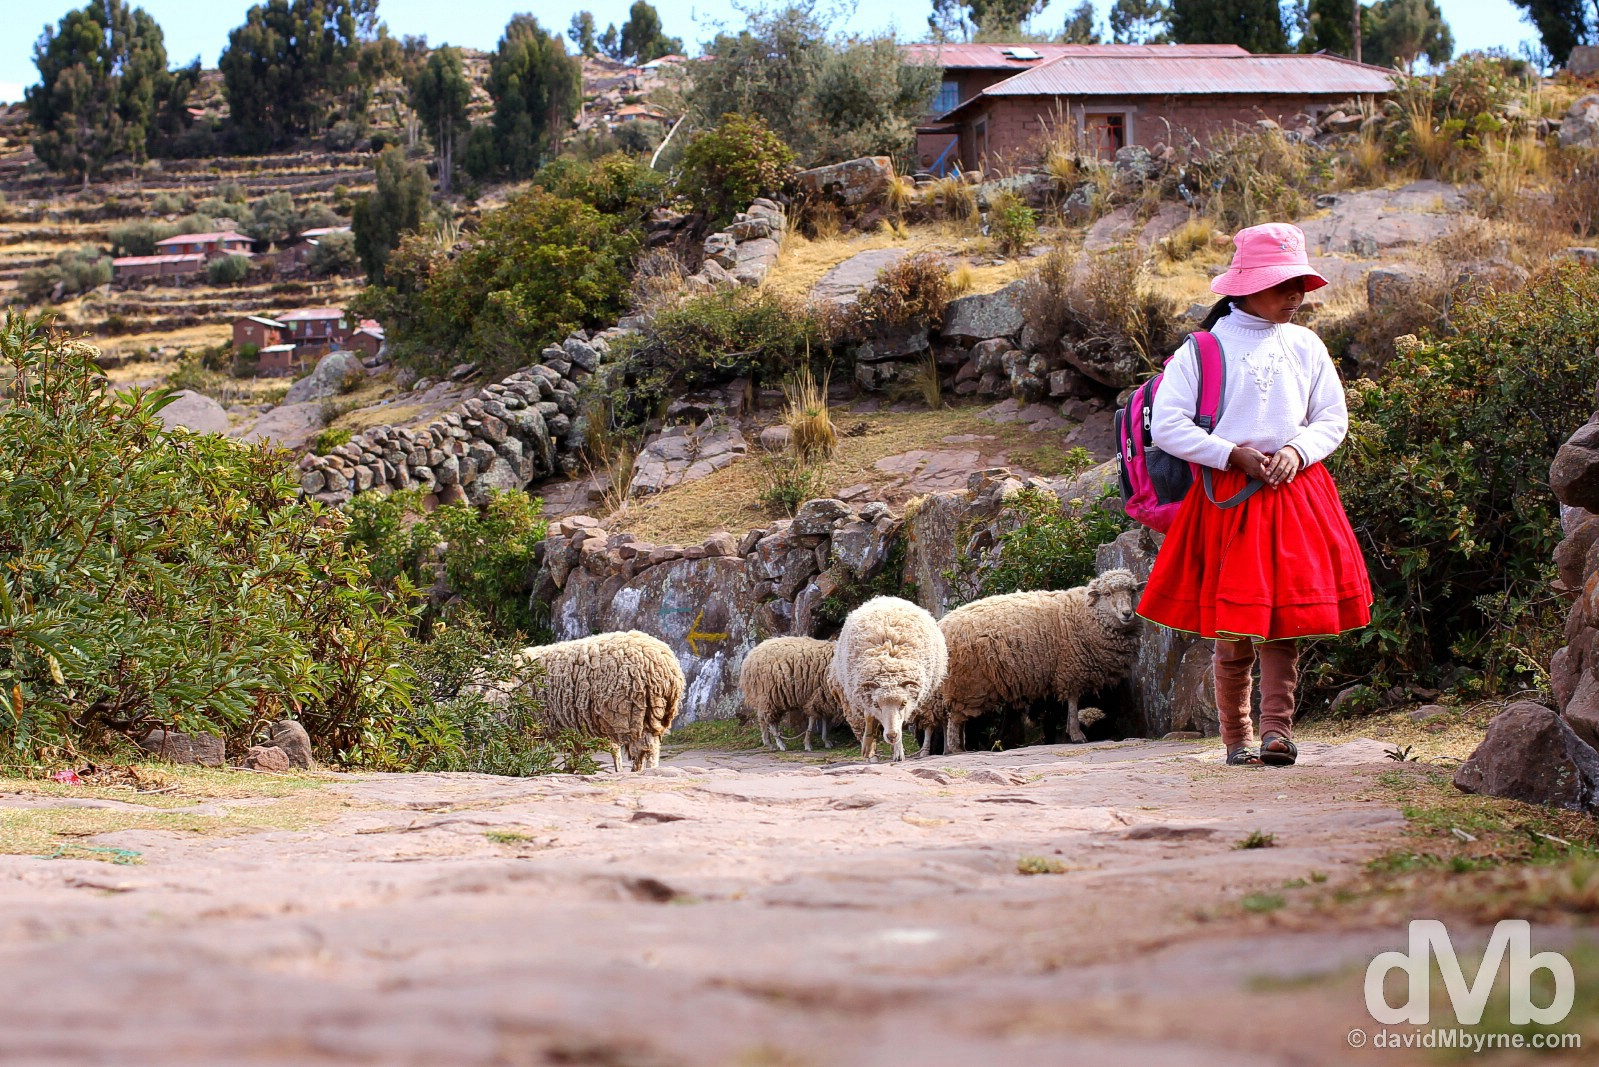 A girl & sheep on path on Taquile Island, Lake Titicaca, Peru. August 20, 2015.